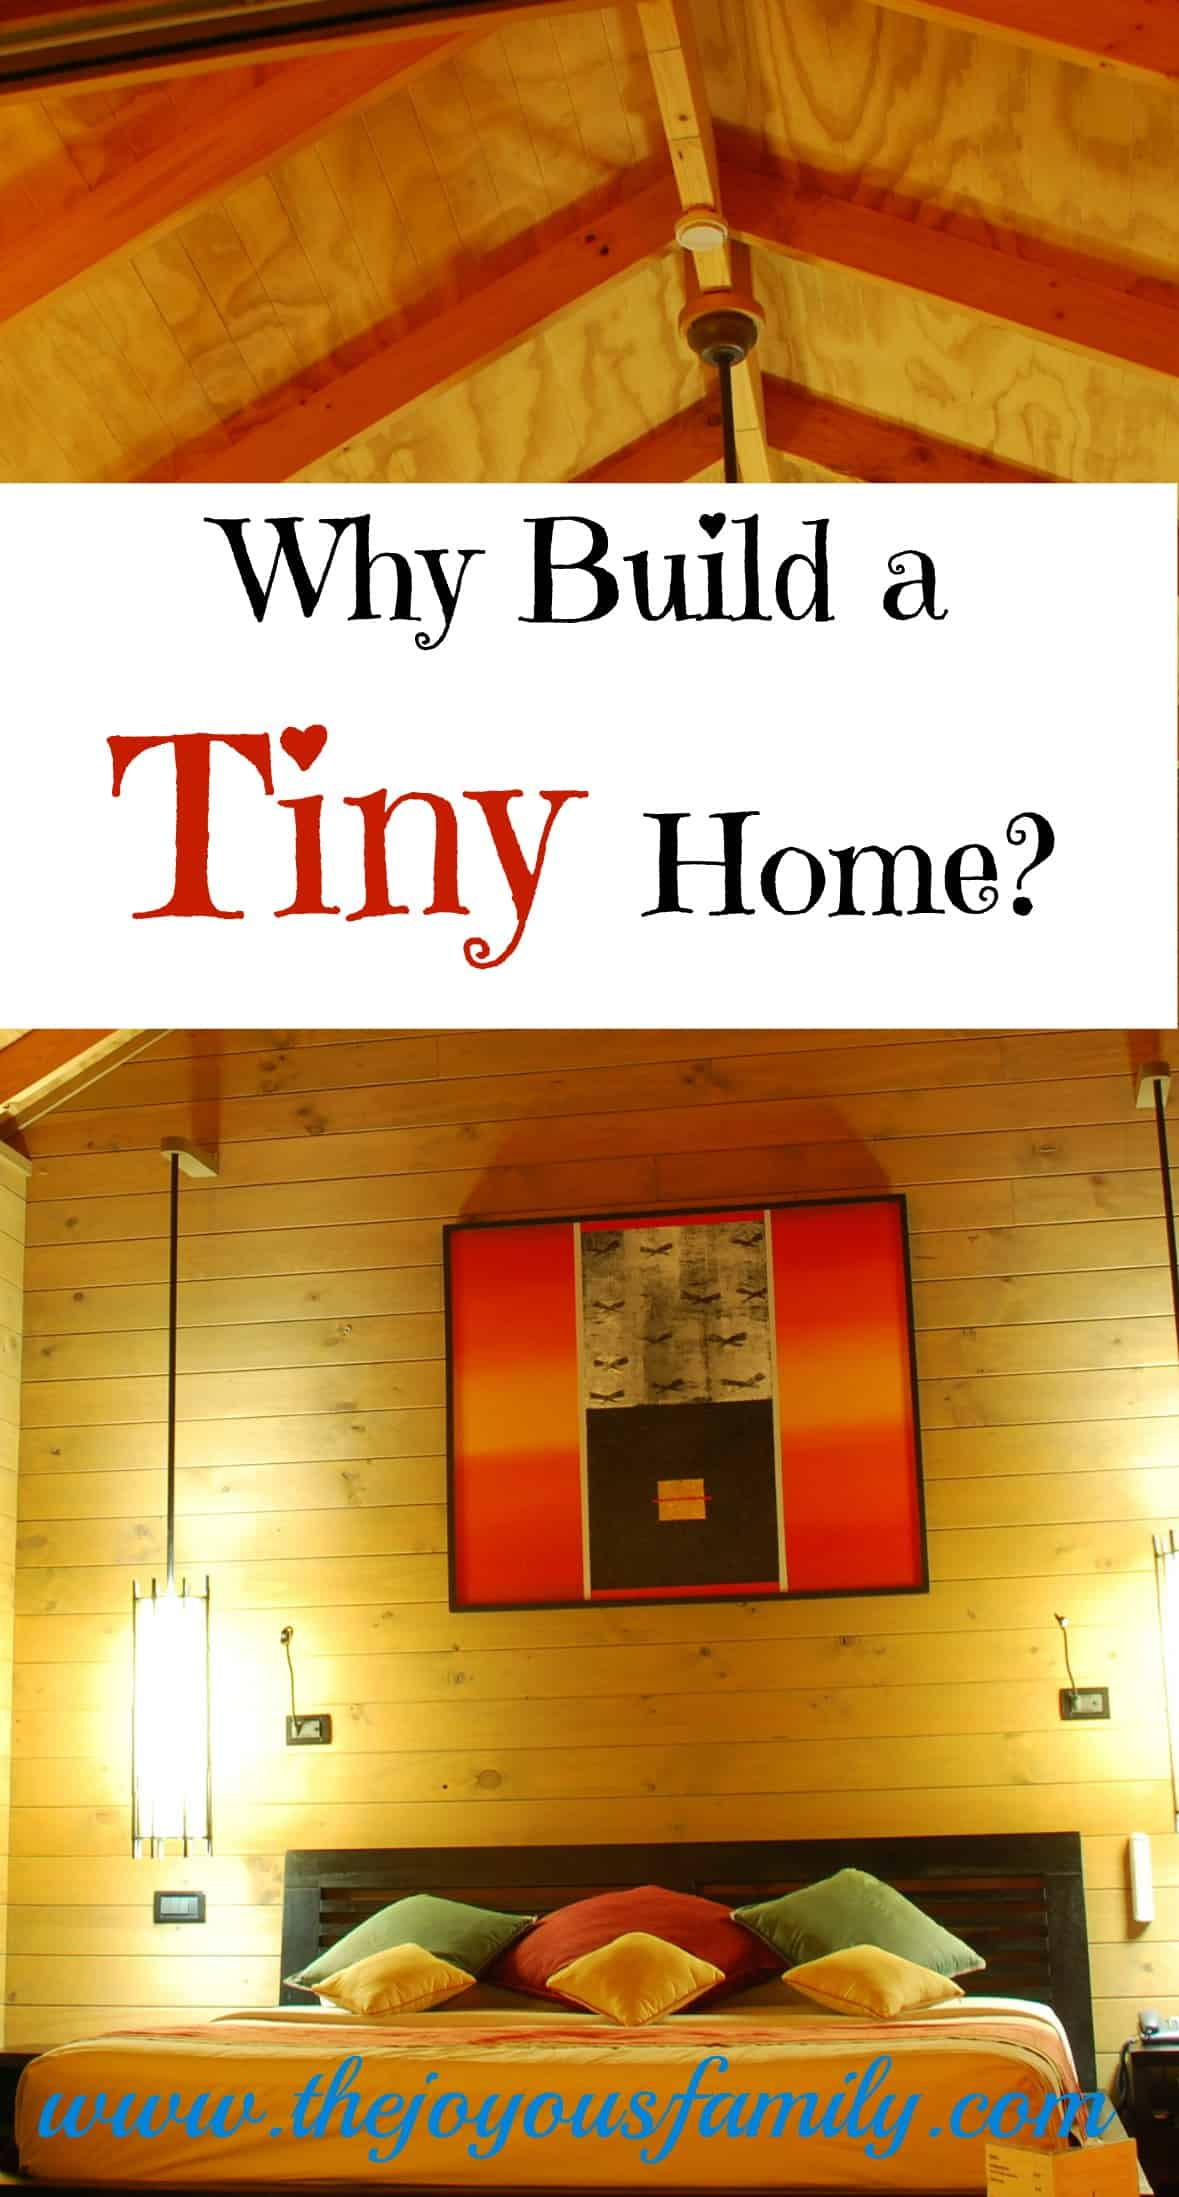 Ditch the debt with a tiny home. Building tiny is a challenge. Is is right for you?